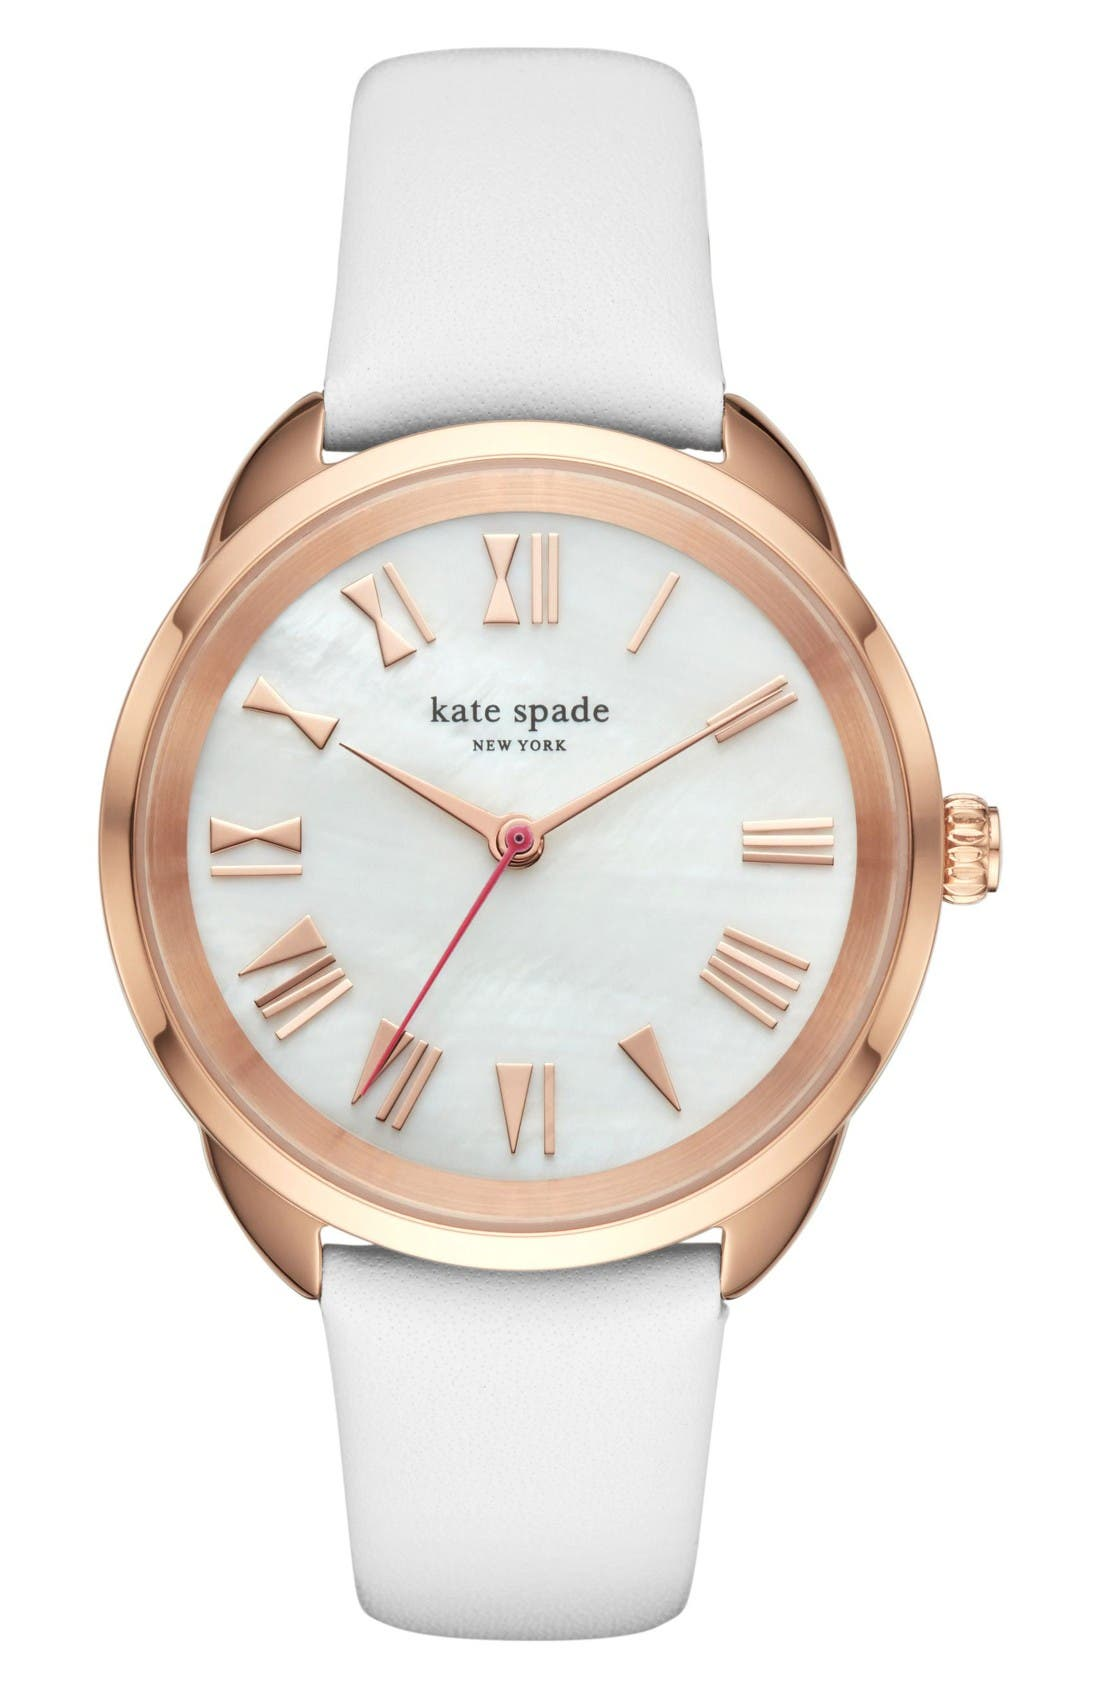 KATE SPADE NEW YORK 'crosstown' leather strap watch,